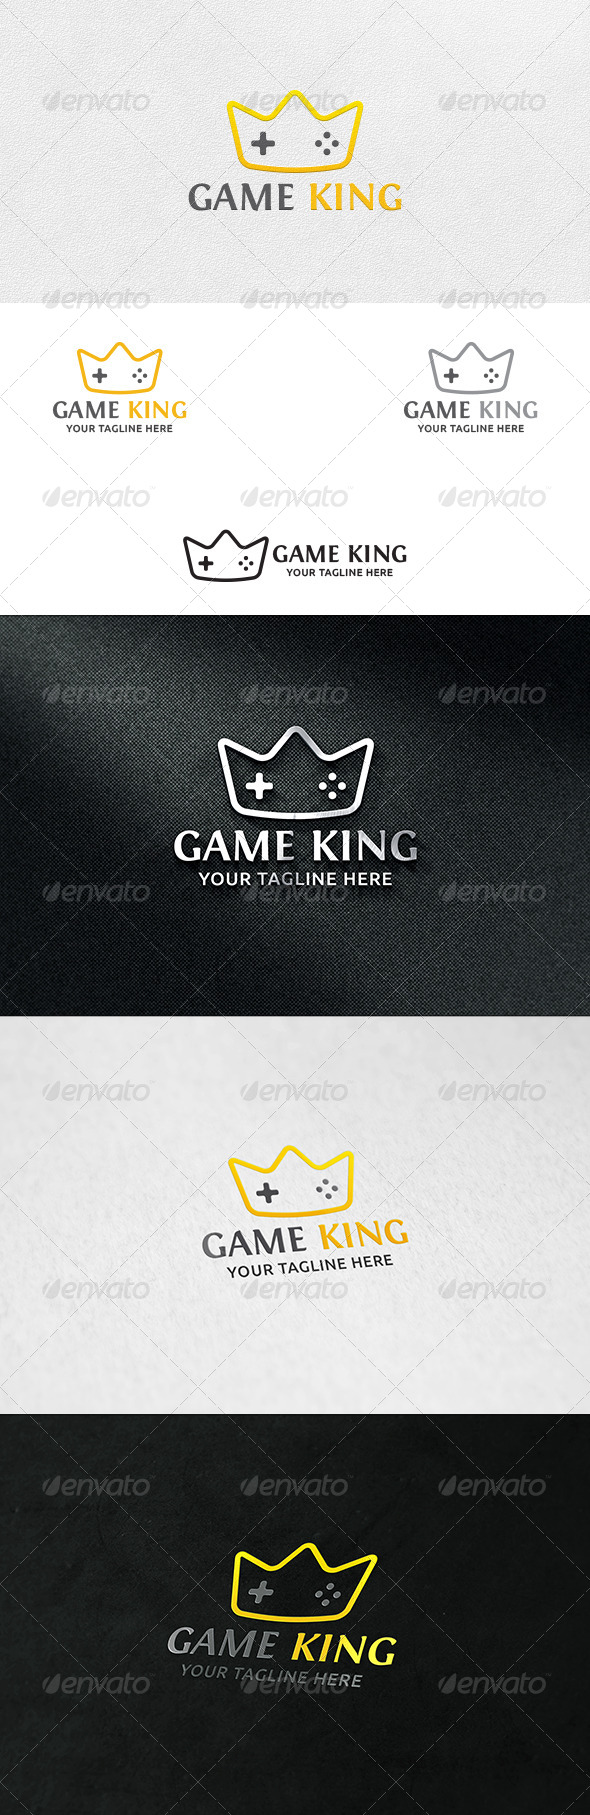 Game King - Logo Template